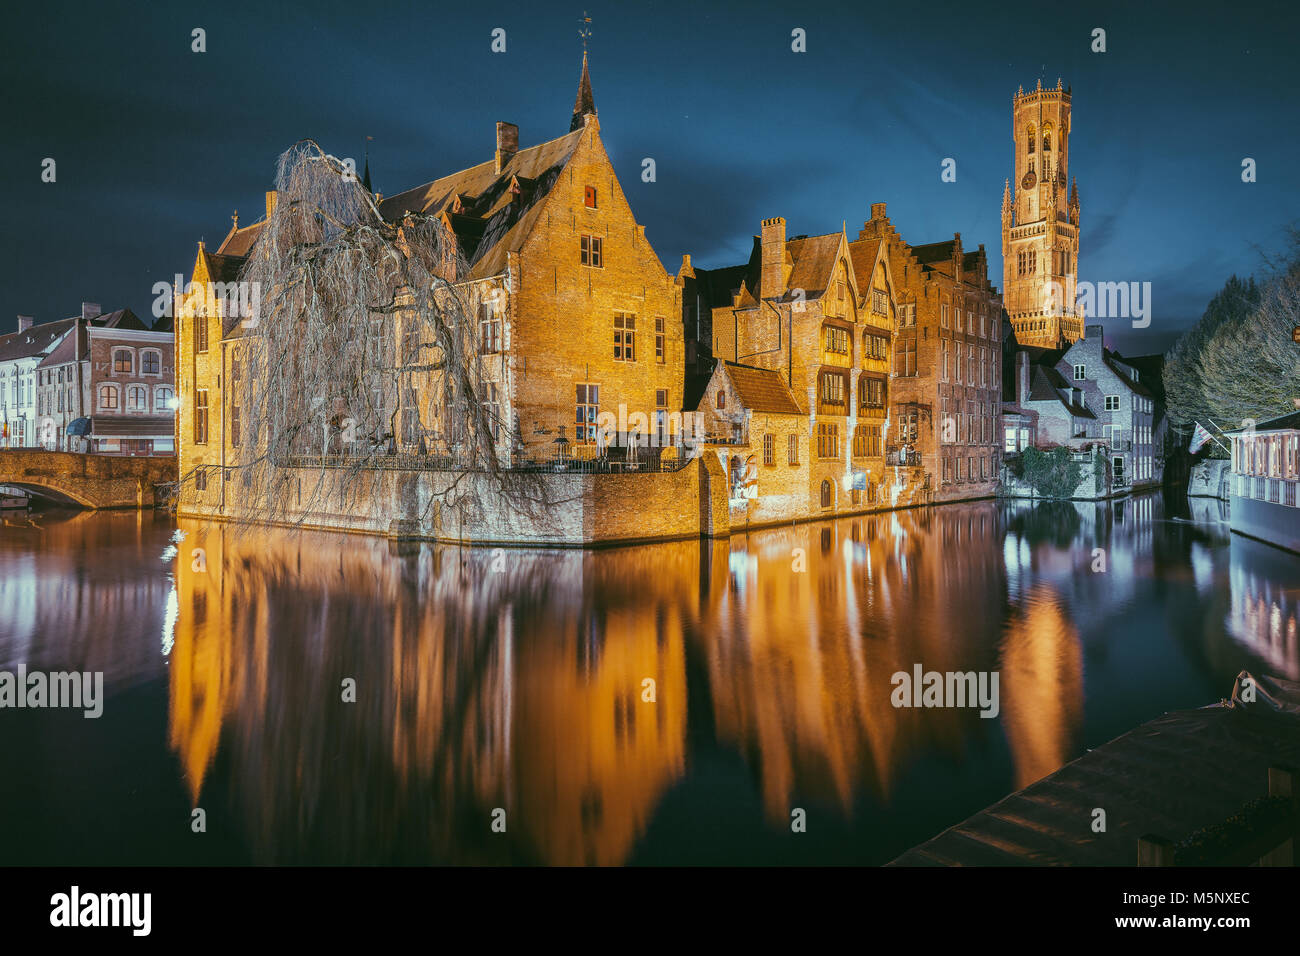 Hstoric city center of Brugge, often referred to as The Venice of the North, with famous Rozenhoedkaai illuminated - Stock Image